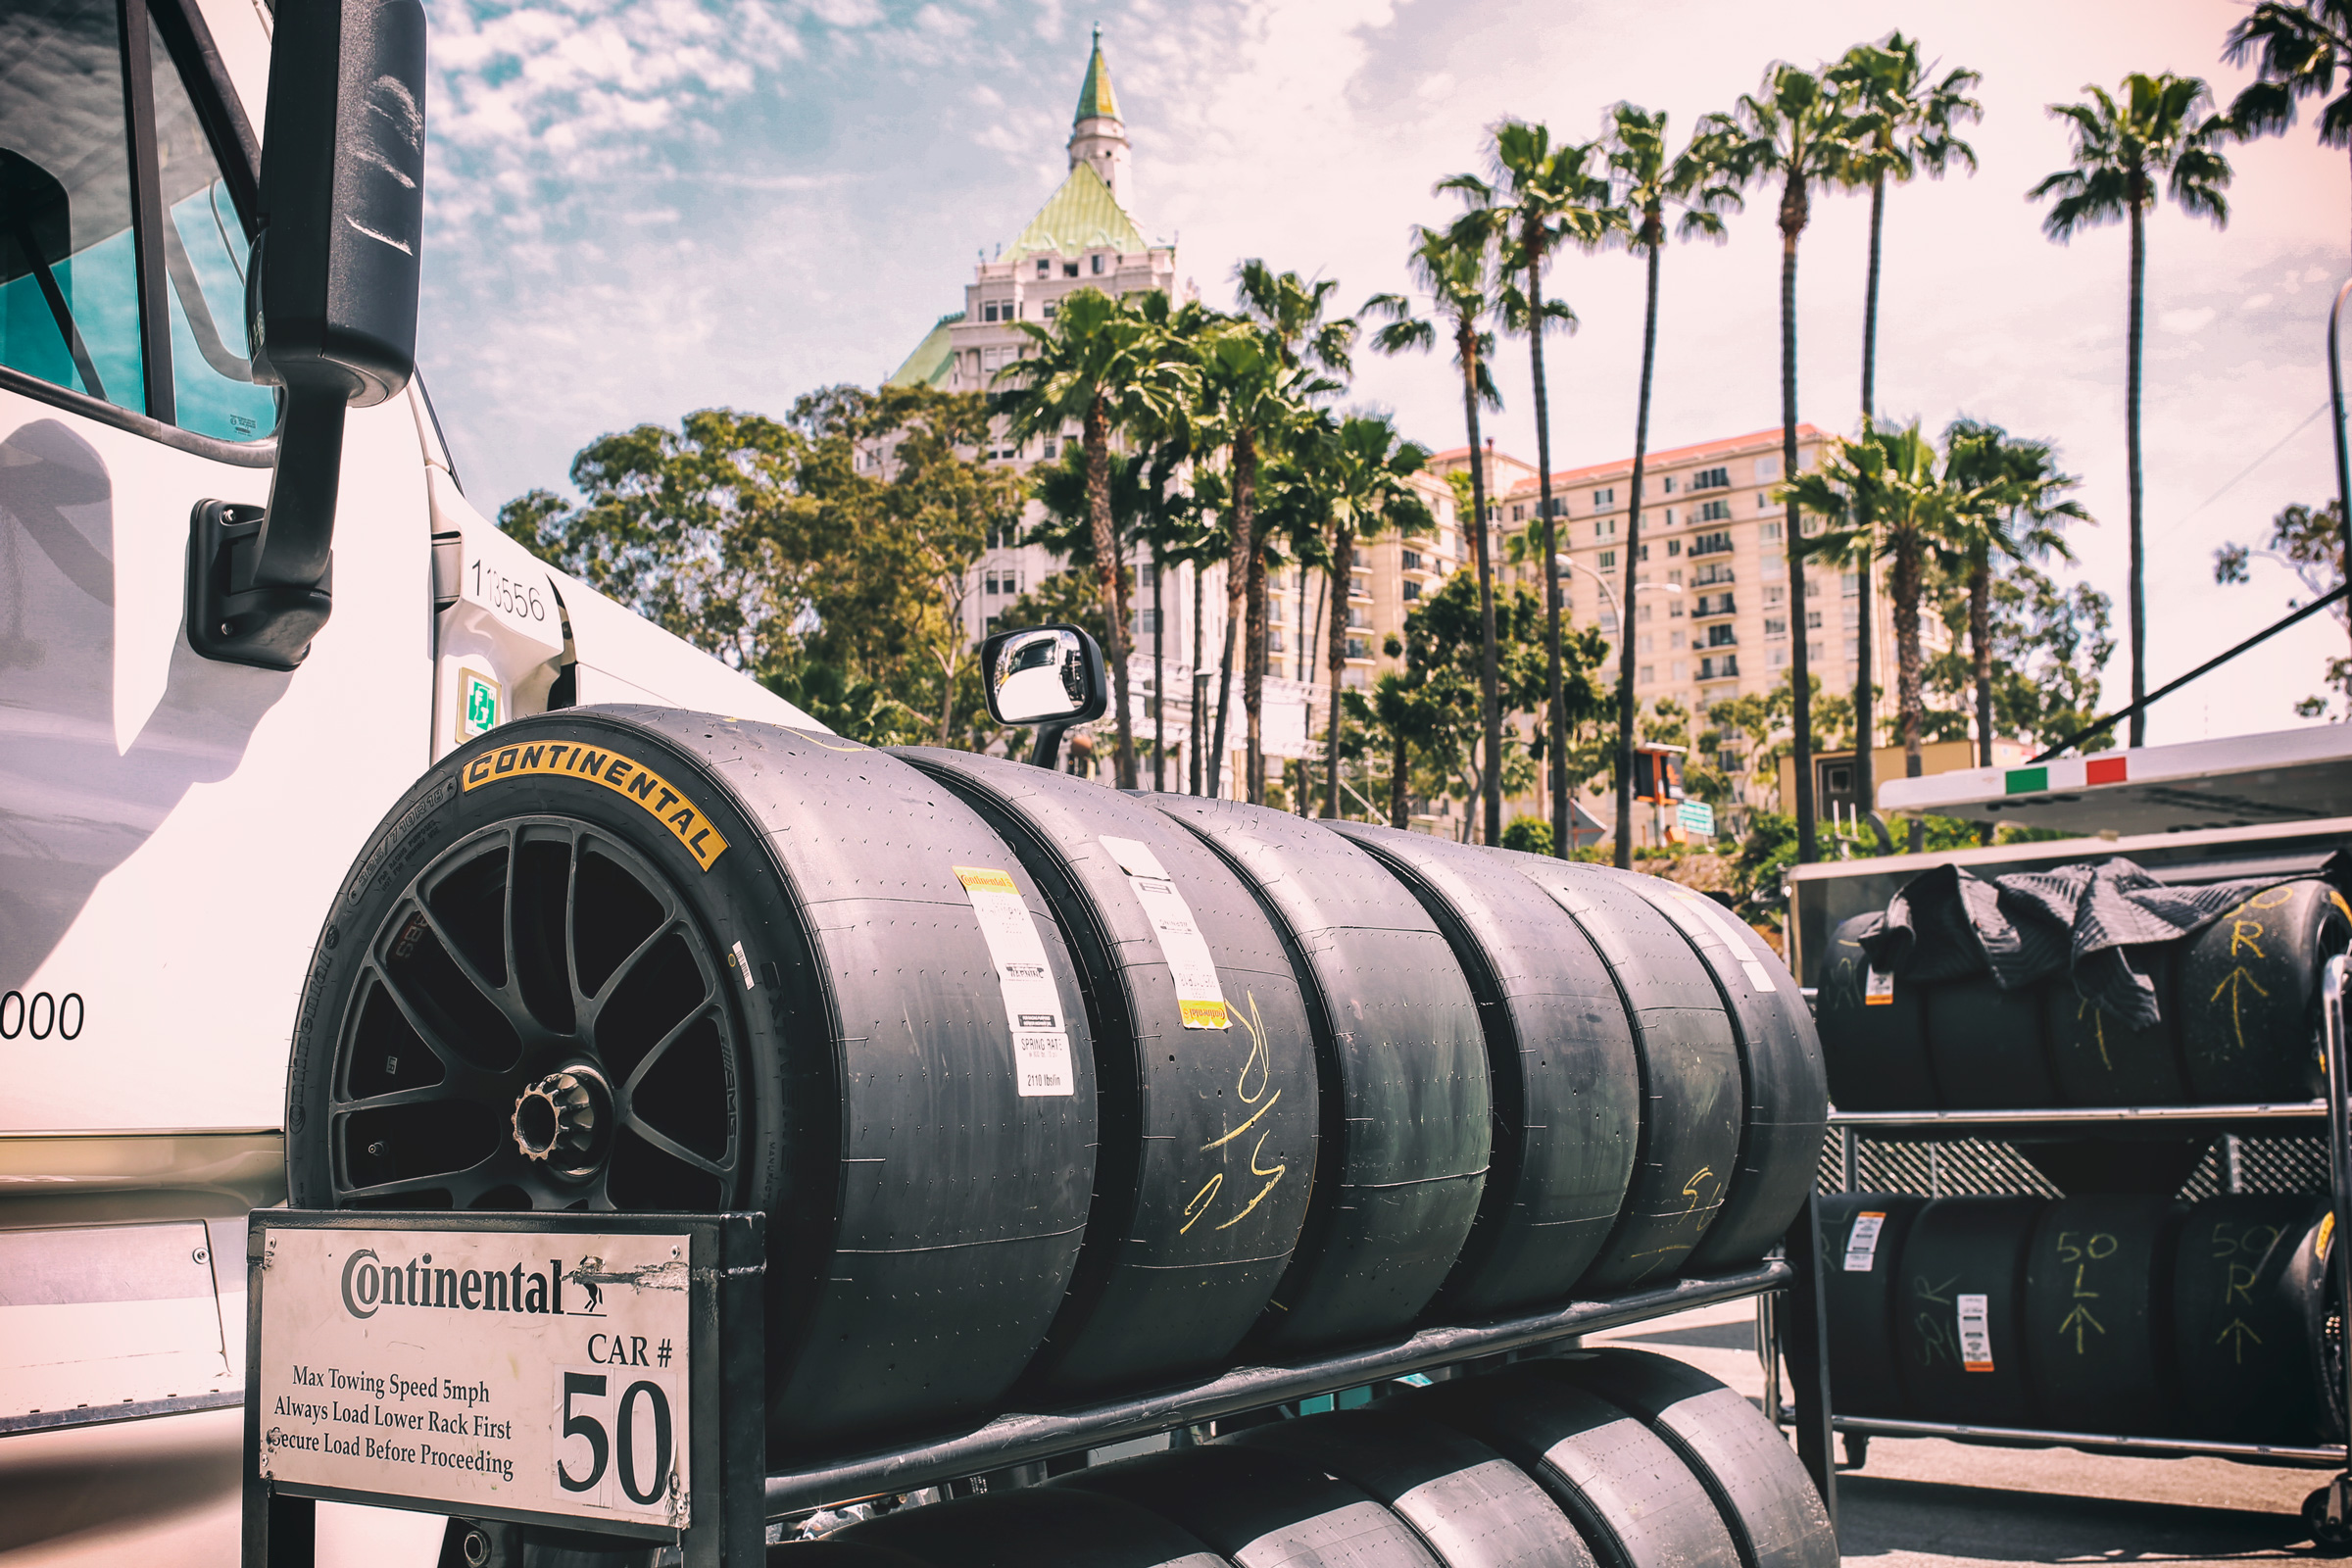 Reifen aufgereiht und bereit für das IMSA Rennen in Long Beach, Los Angeles. Tires lined up and ready prepared for the IMSA race in Long Beach, Los Angeles.